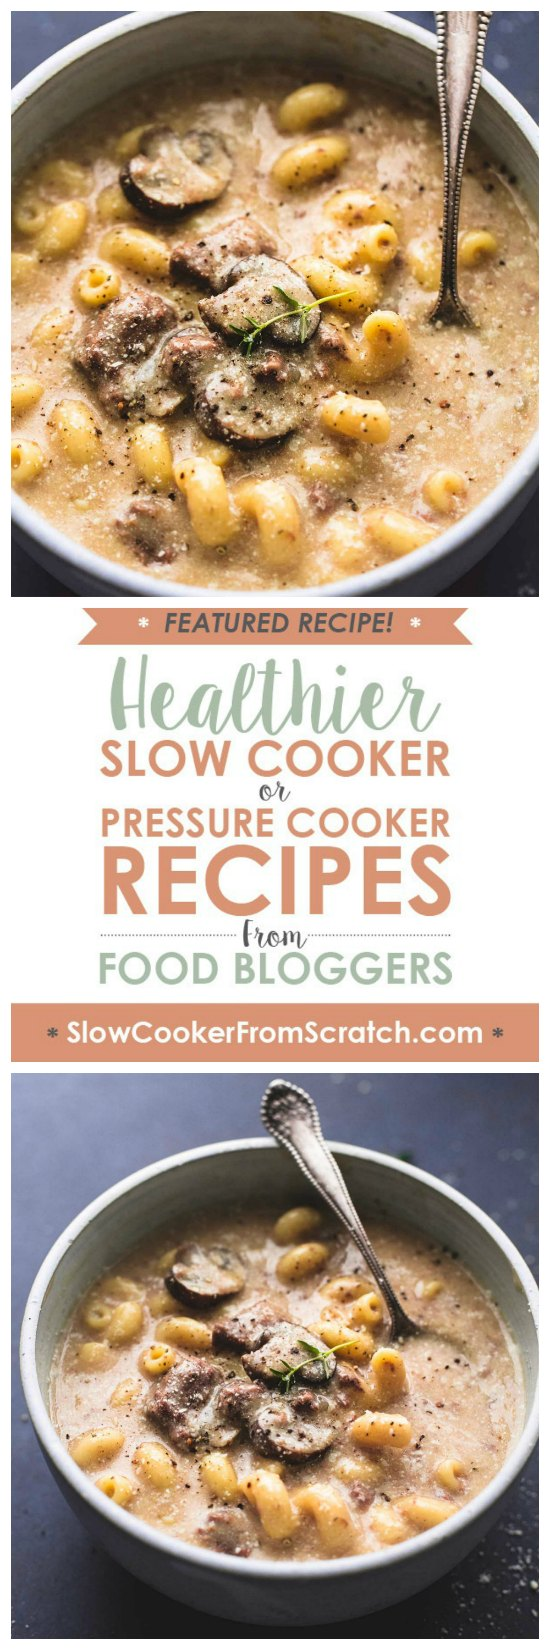 Instant Pot or Slow Cooker Beef Stroganoff Soup from Creme de la Crumb featured on Slow Cooker or Pressure Cooker at SlowCookerFromScratch.com